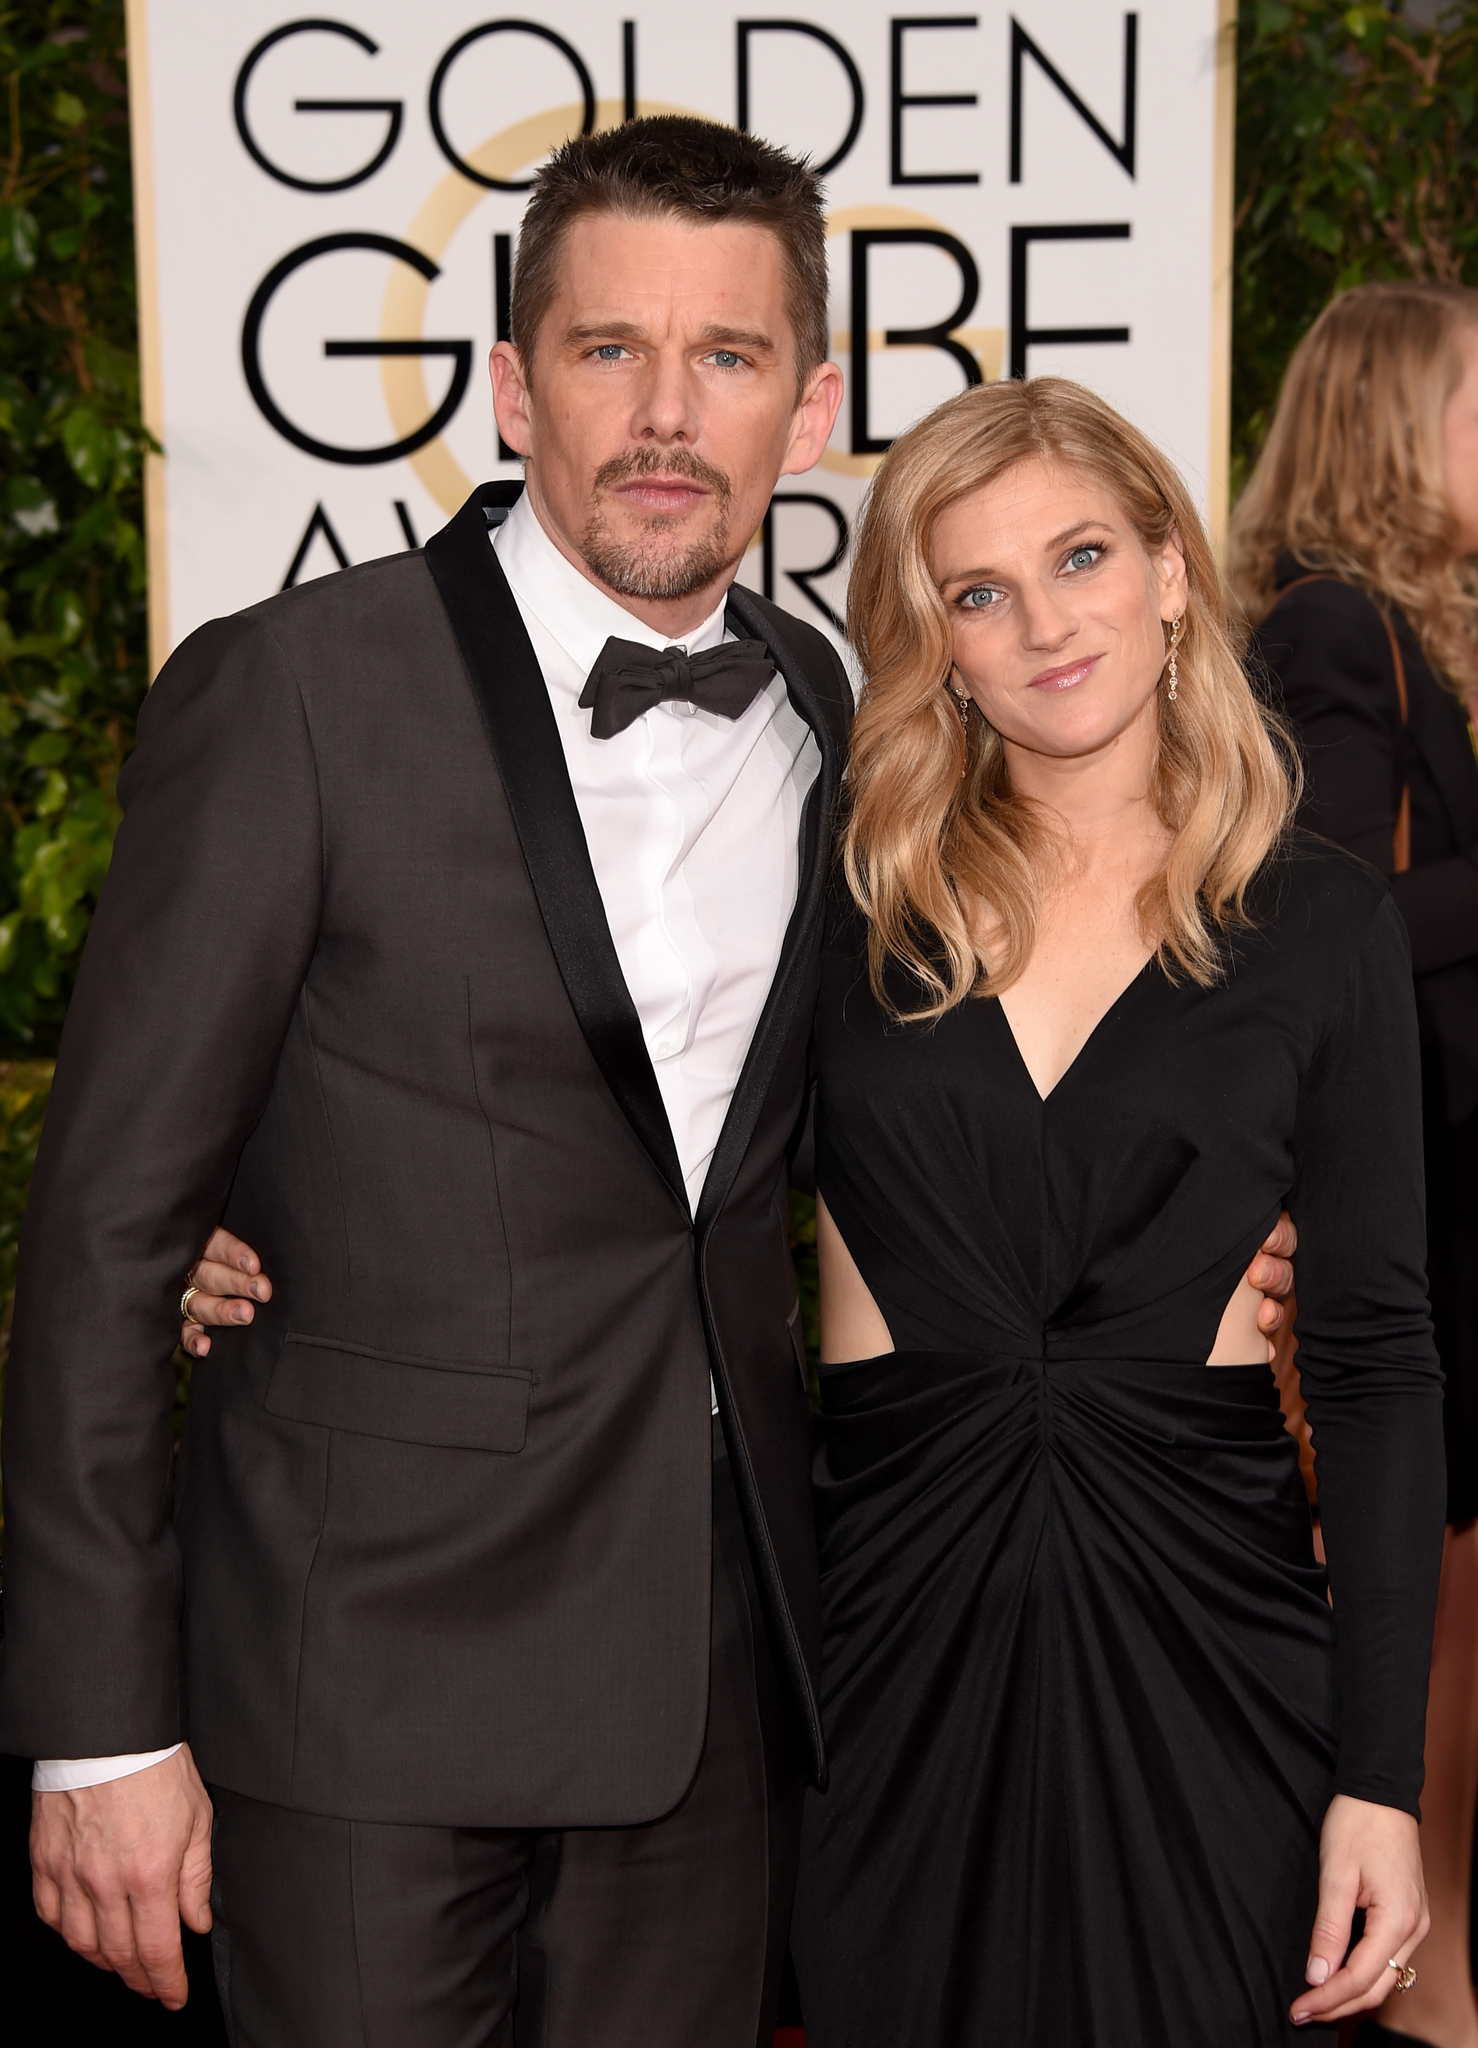 Ethan Hawke and Ryan Hawke at an event for 72nd Golden Globe Awards (2015)